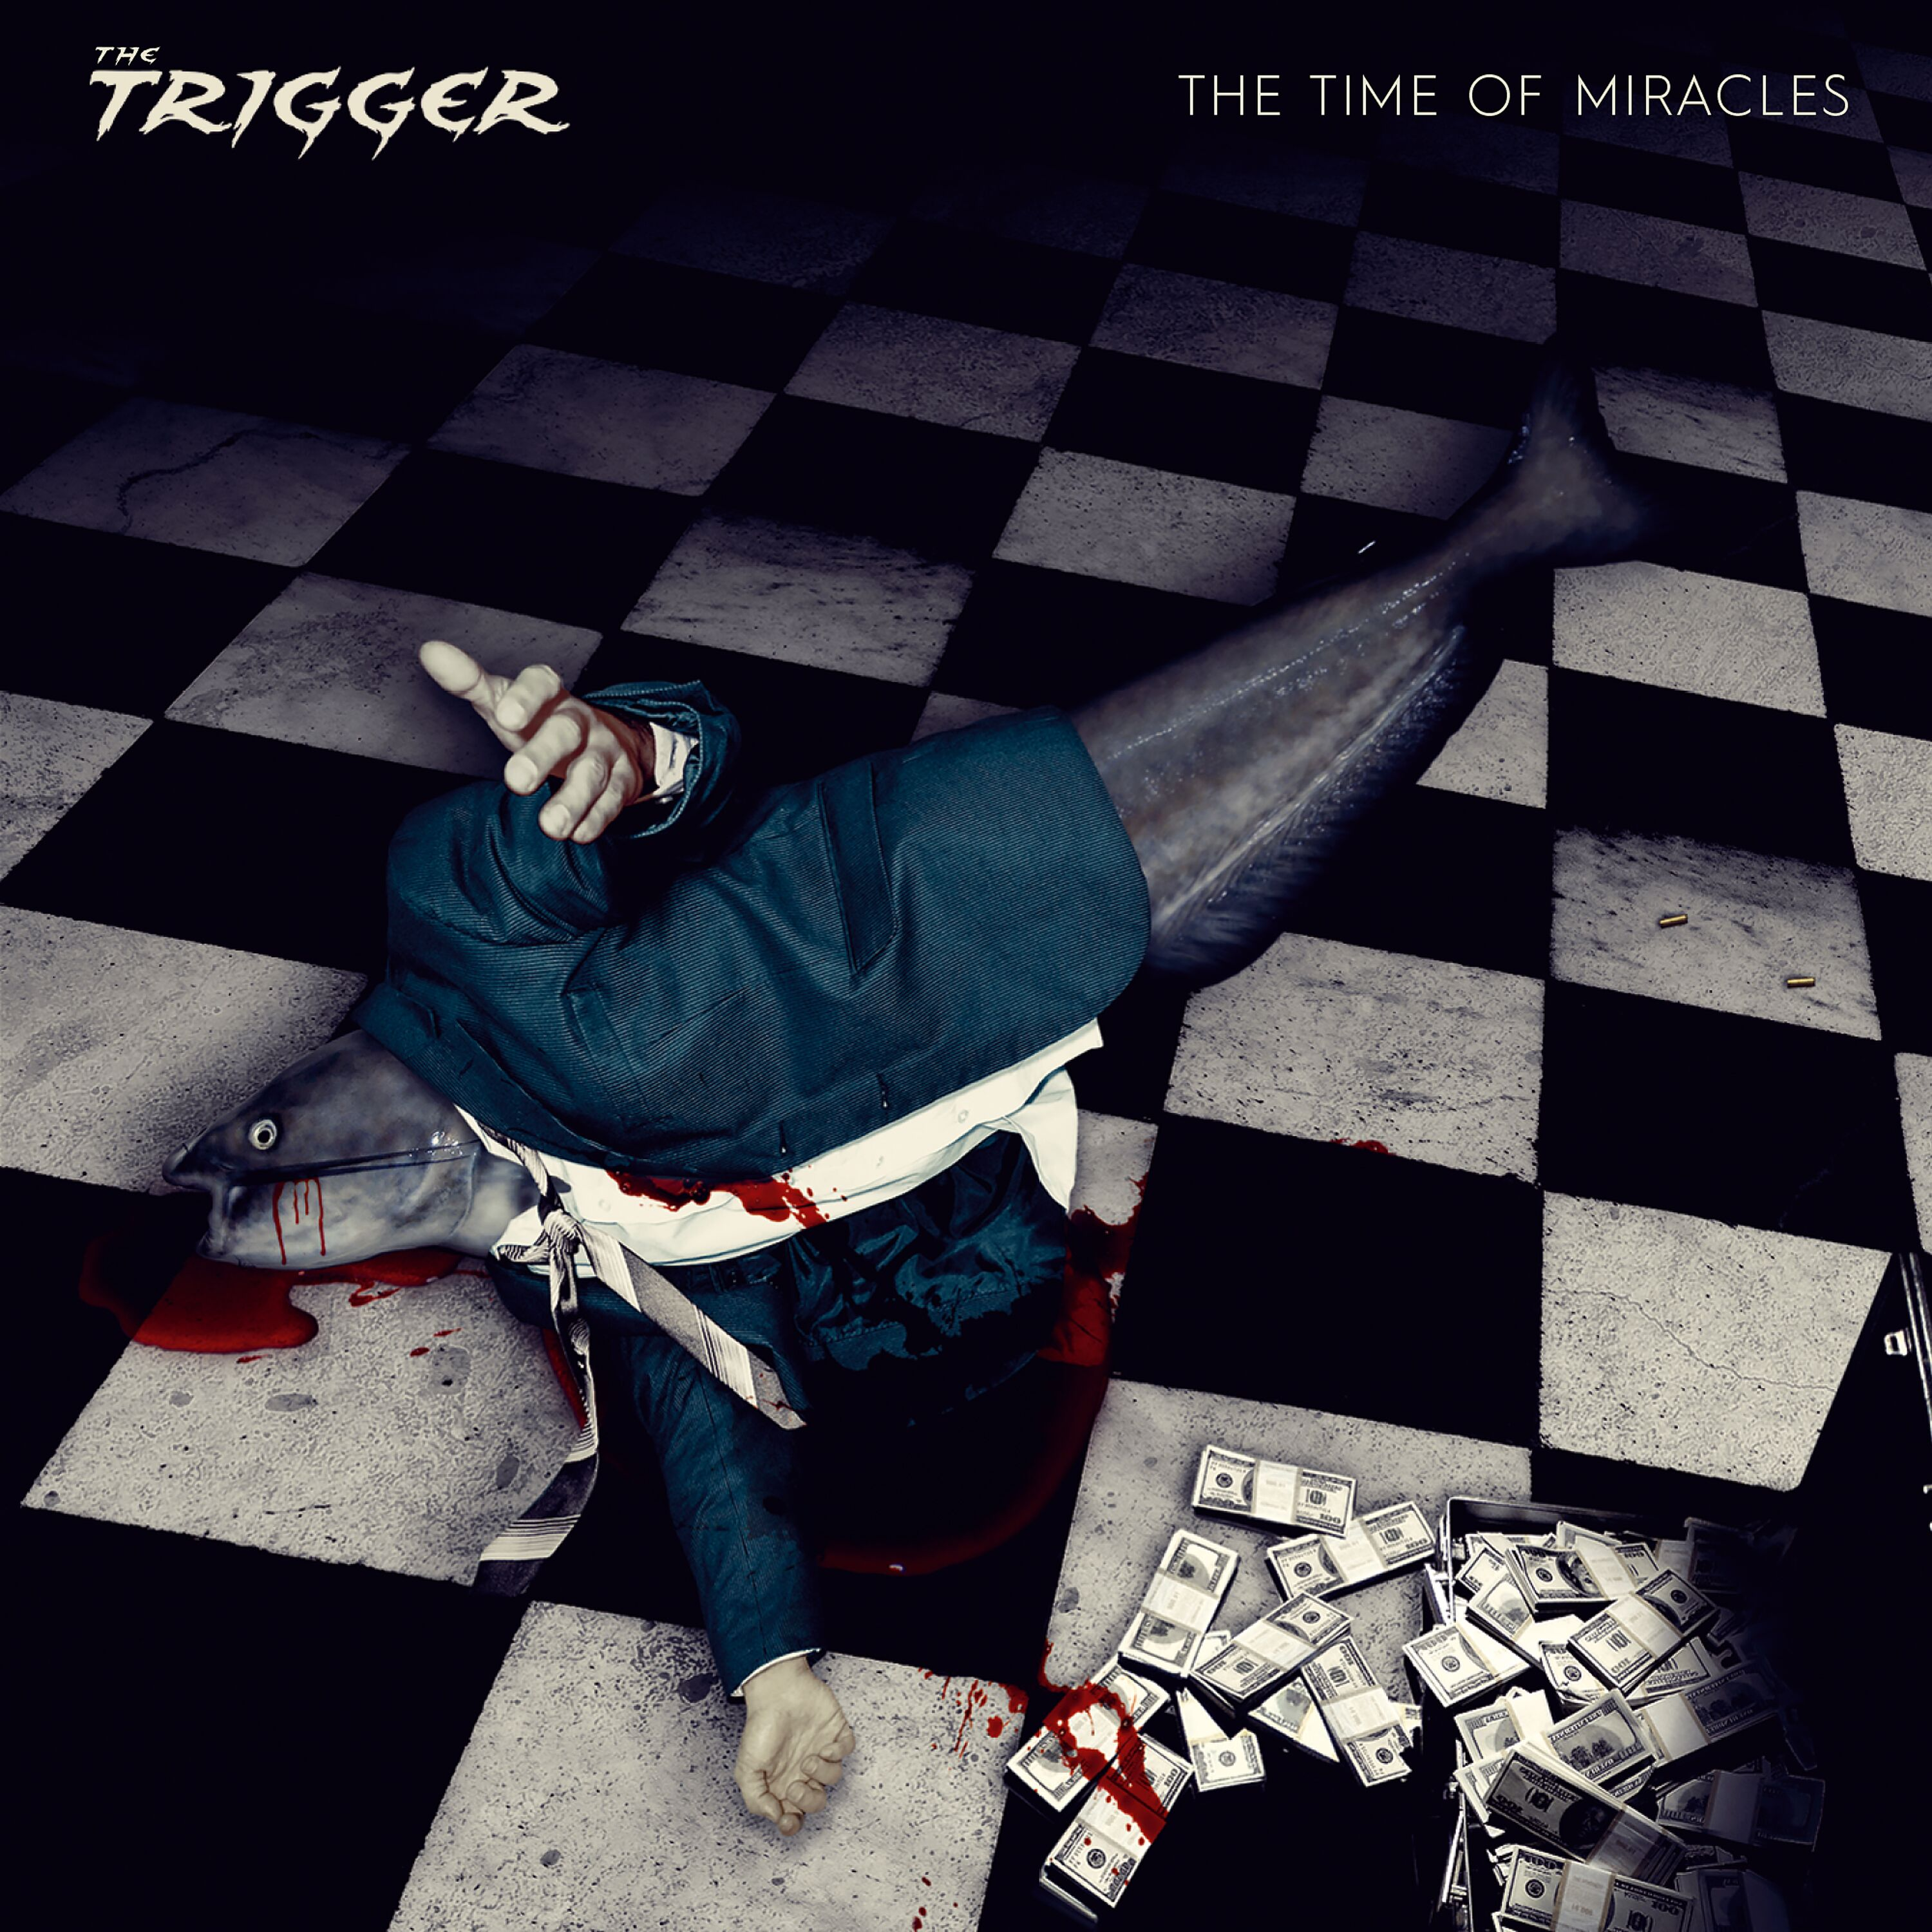 the-trigger-neues-lyric-video-online-und-album-im-anmarsch